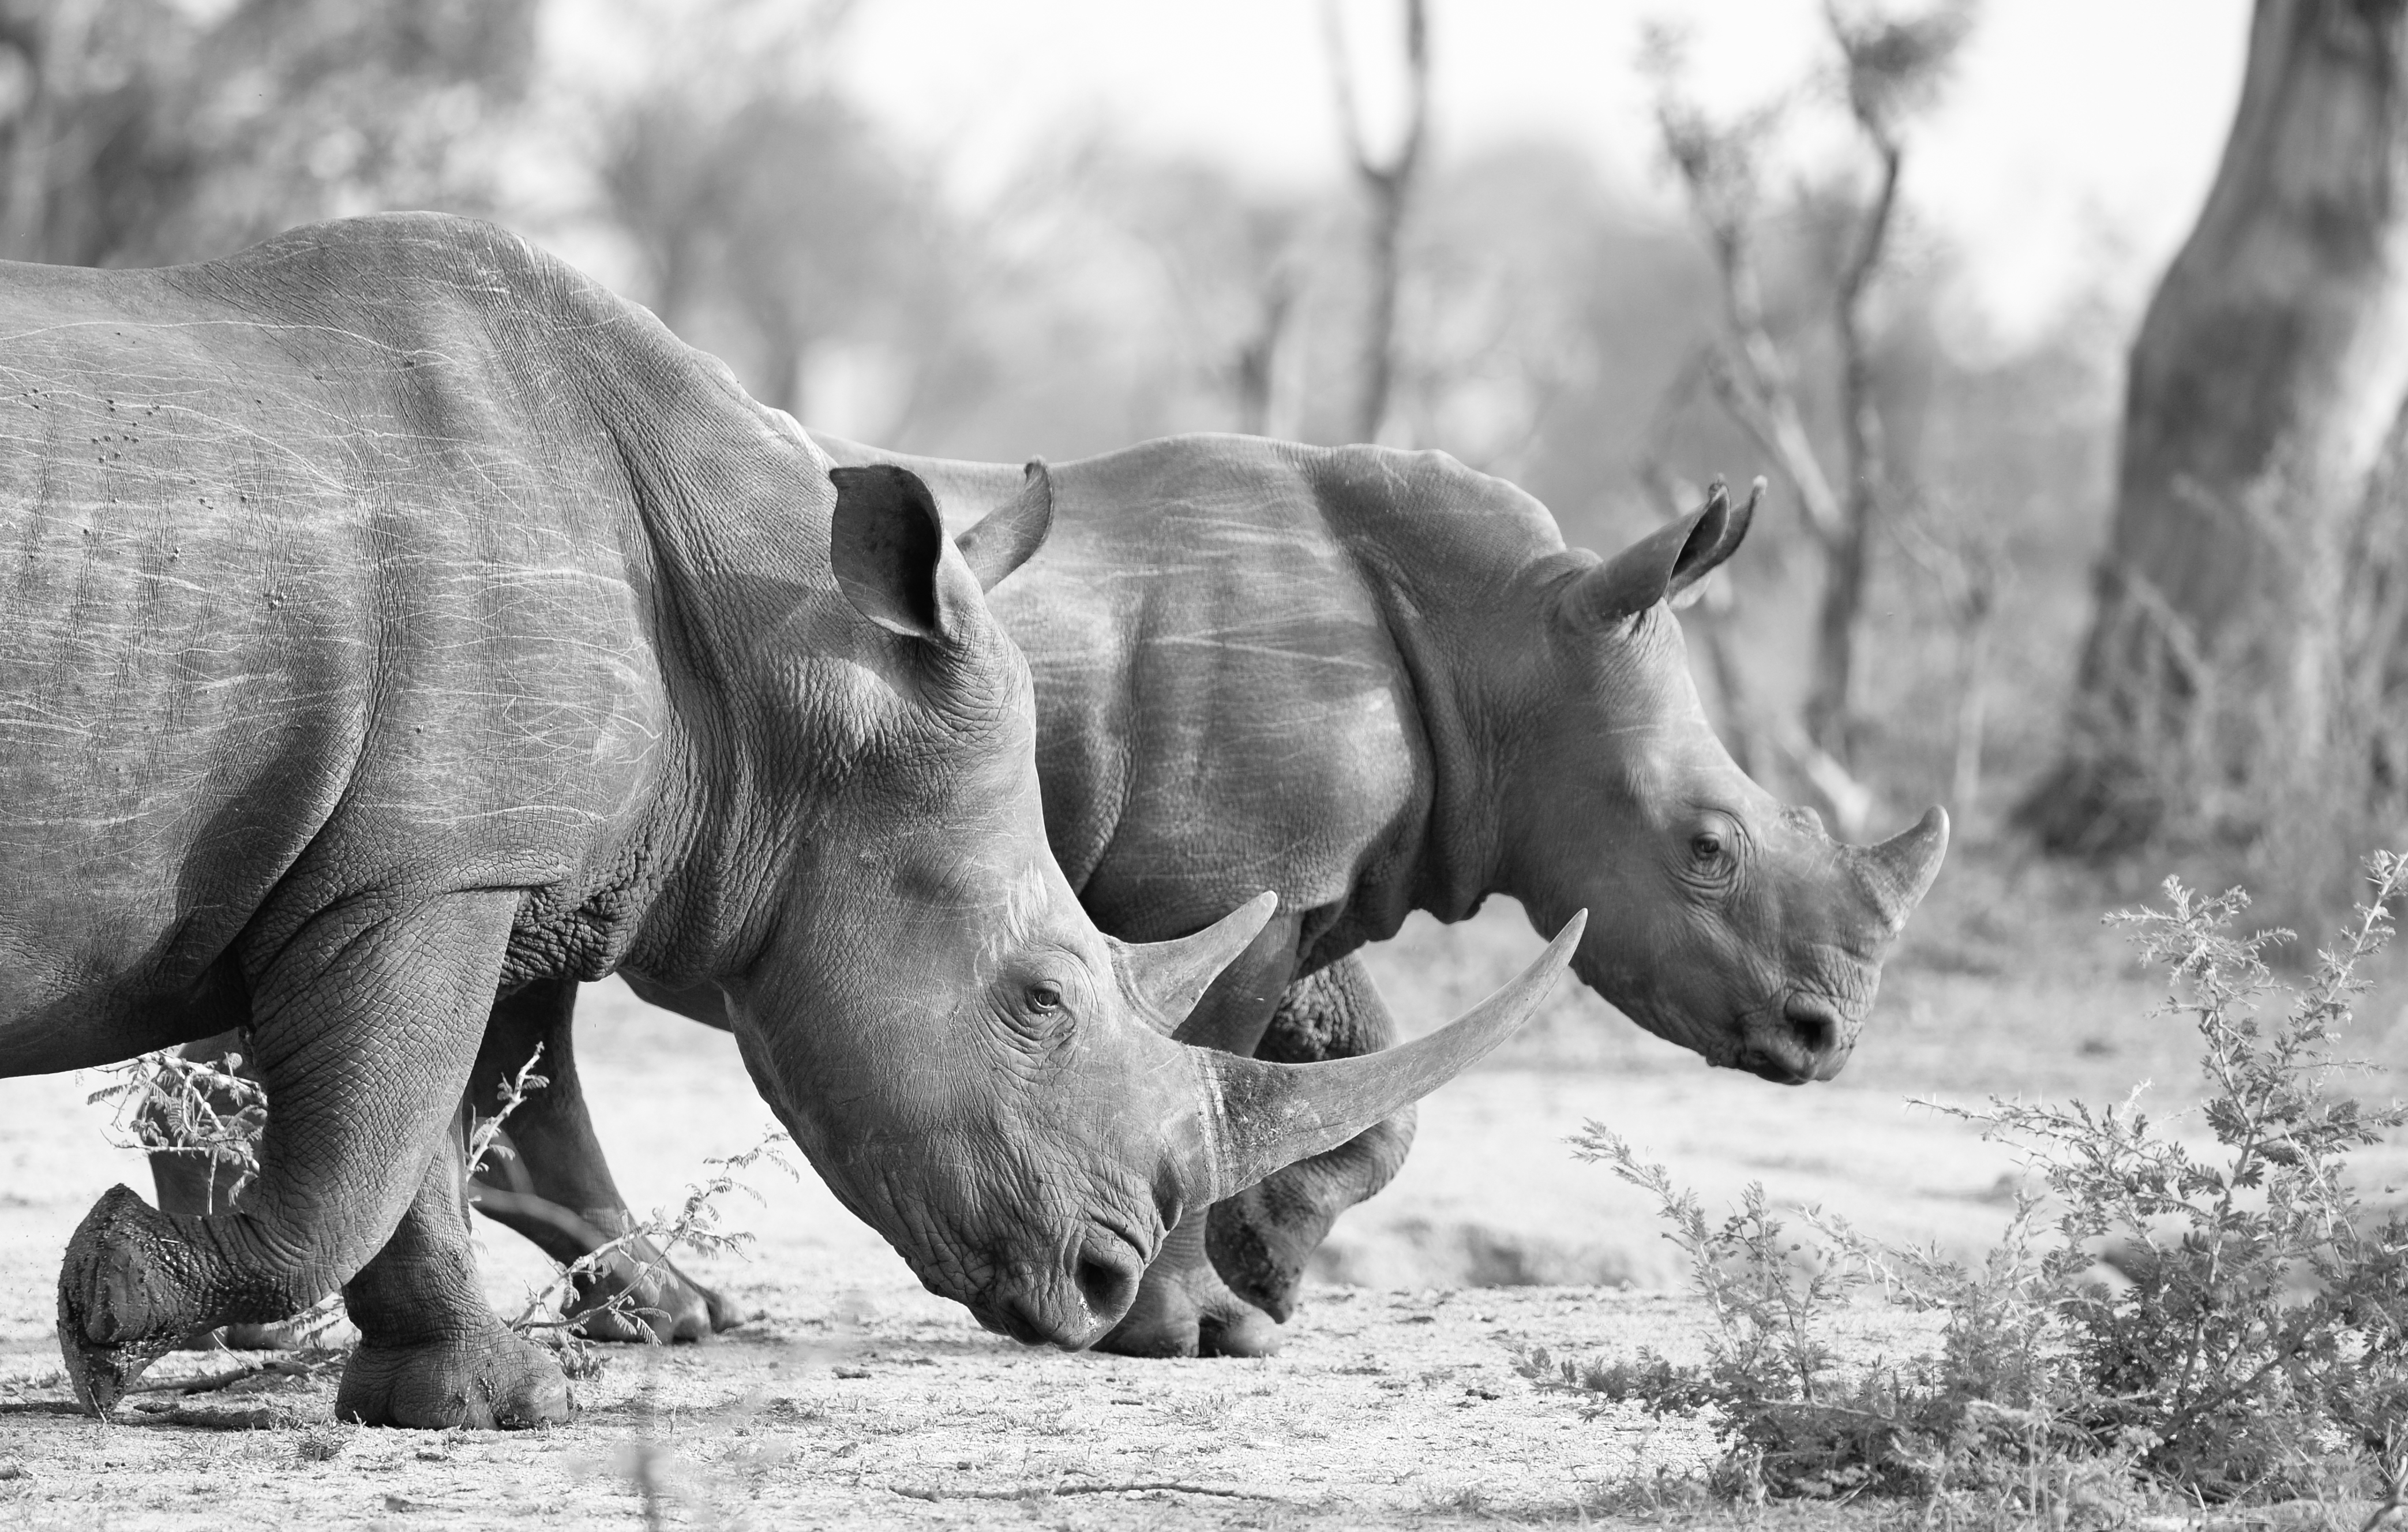 Female rhino with baby rhino _Johannes Ratermann